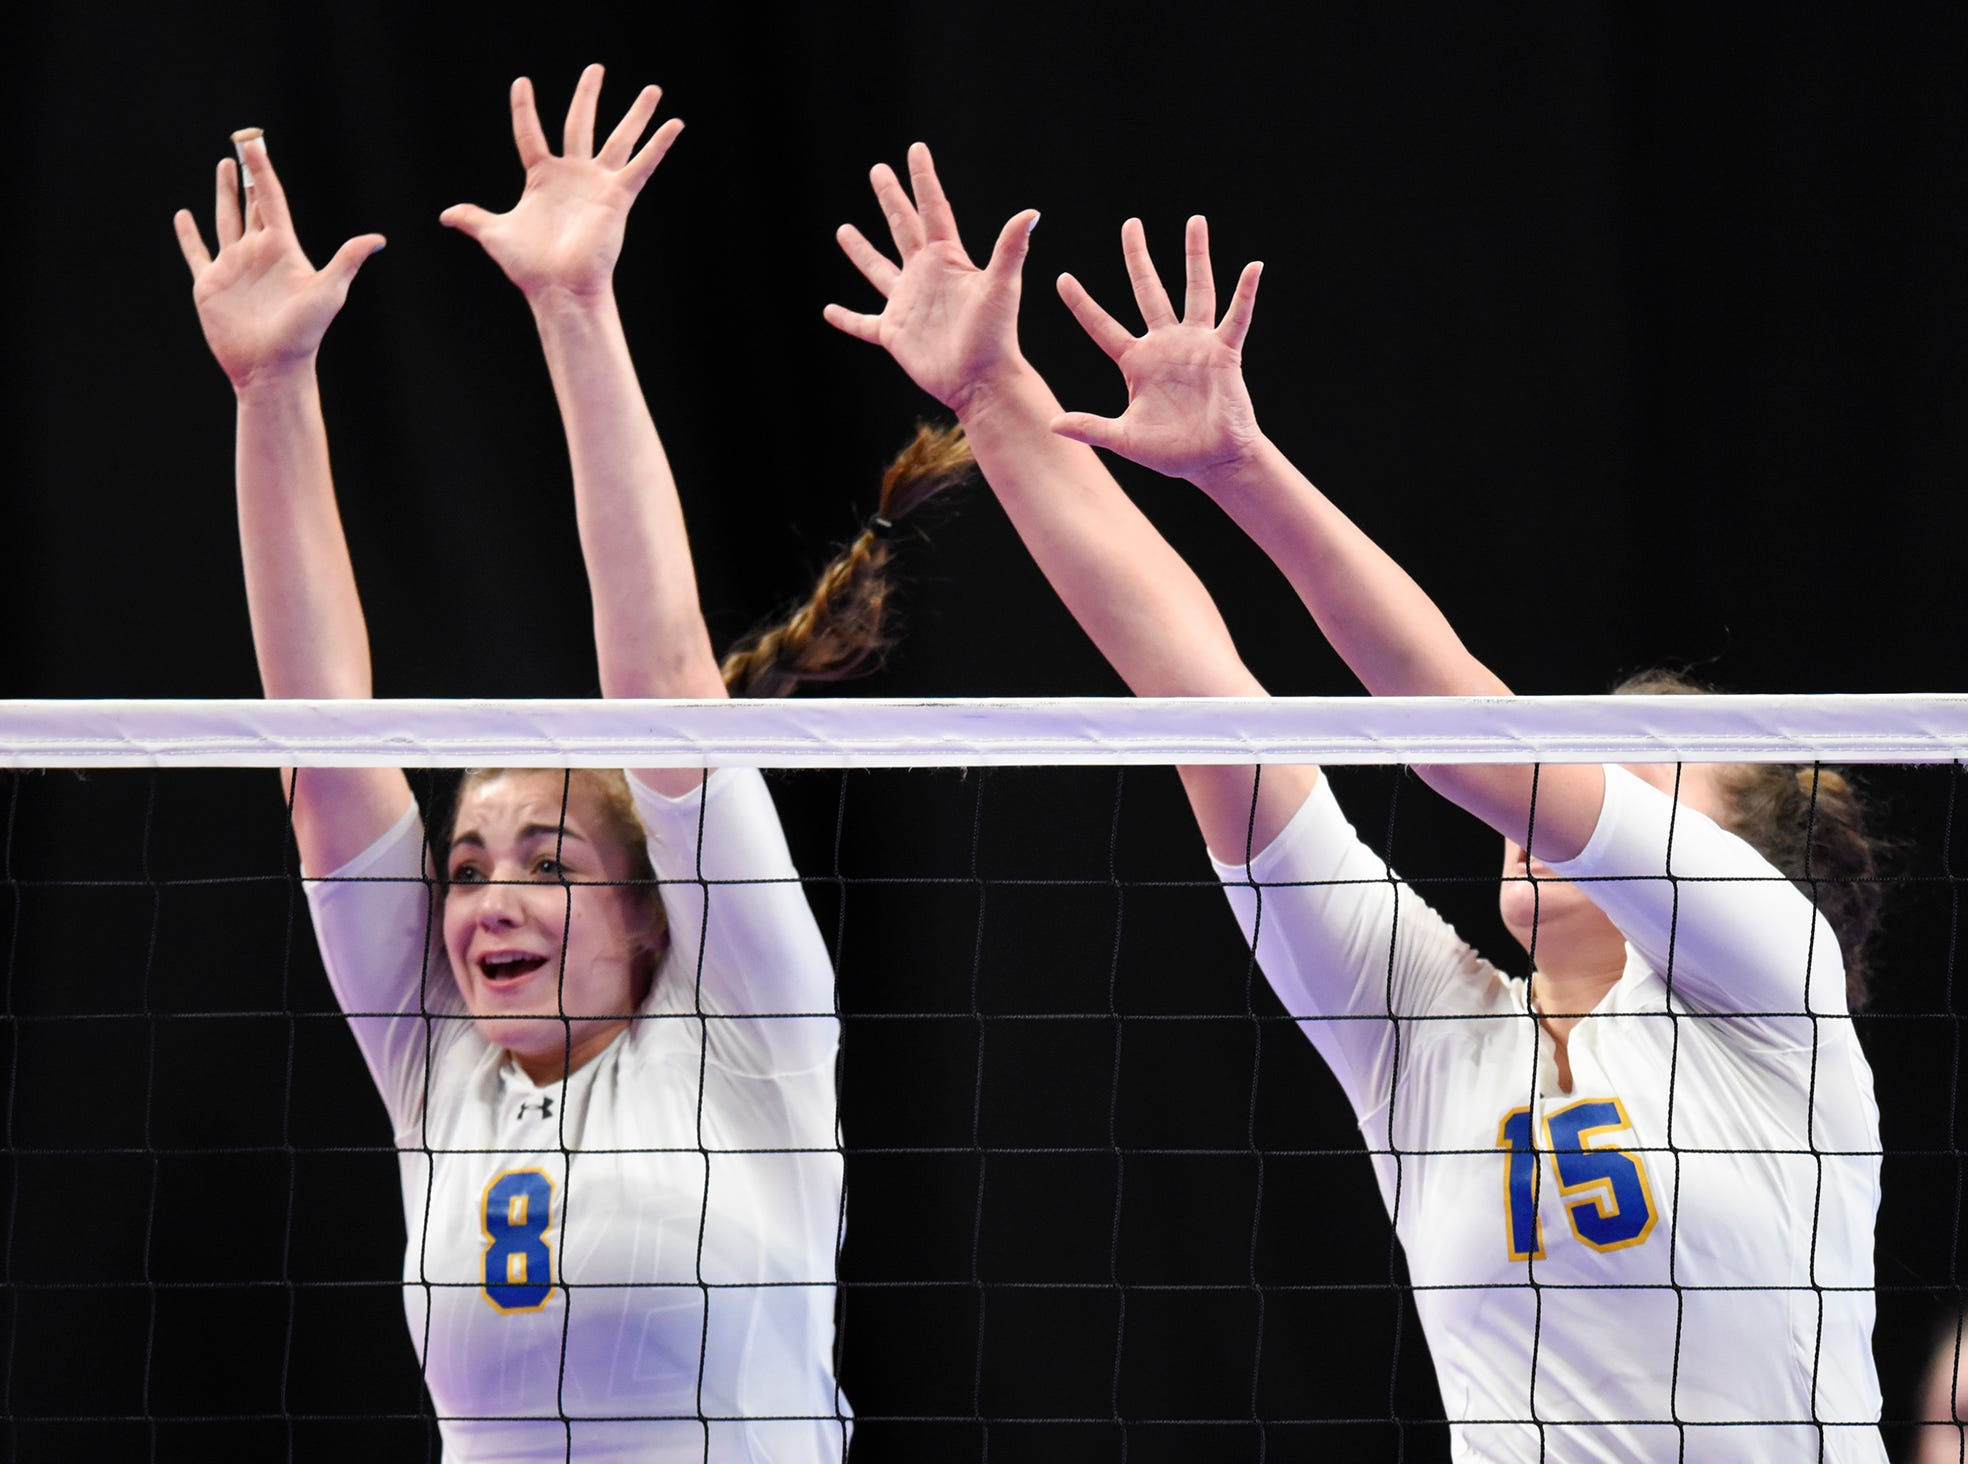 Megan Voit and Gabby Heying attempt a block for Cathedral during the state Class 2A quarterfinals Thursday, Nov. 8, at the Xcel Energy Center in St. Paul.